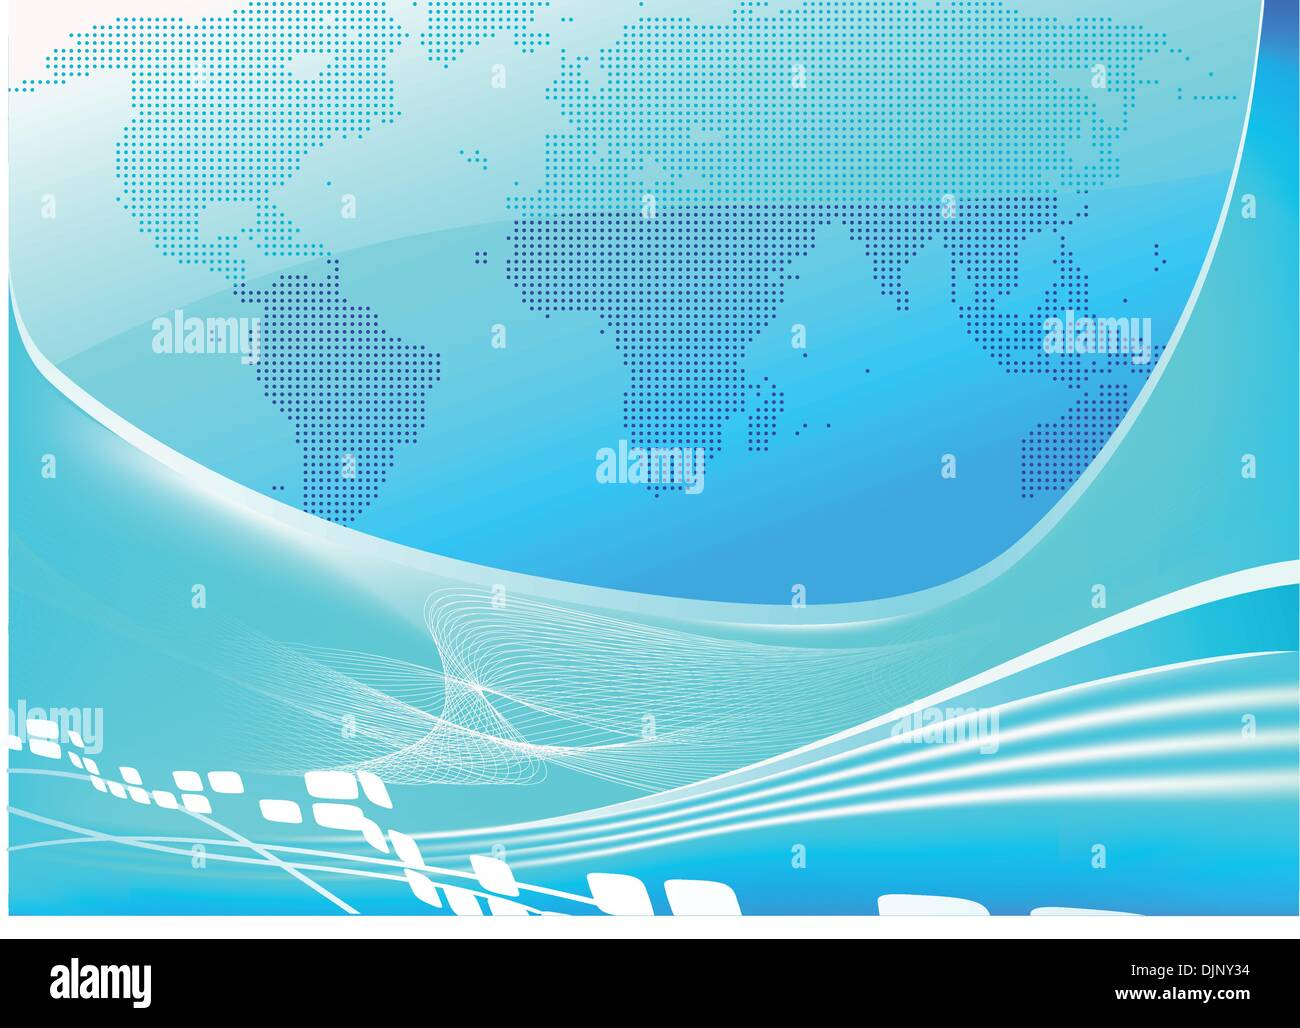 Vector illustration of stylised blue world map background - Stock Vector